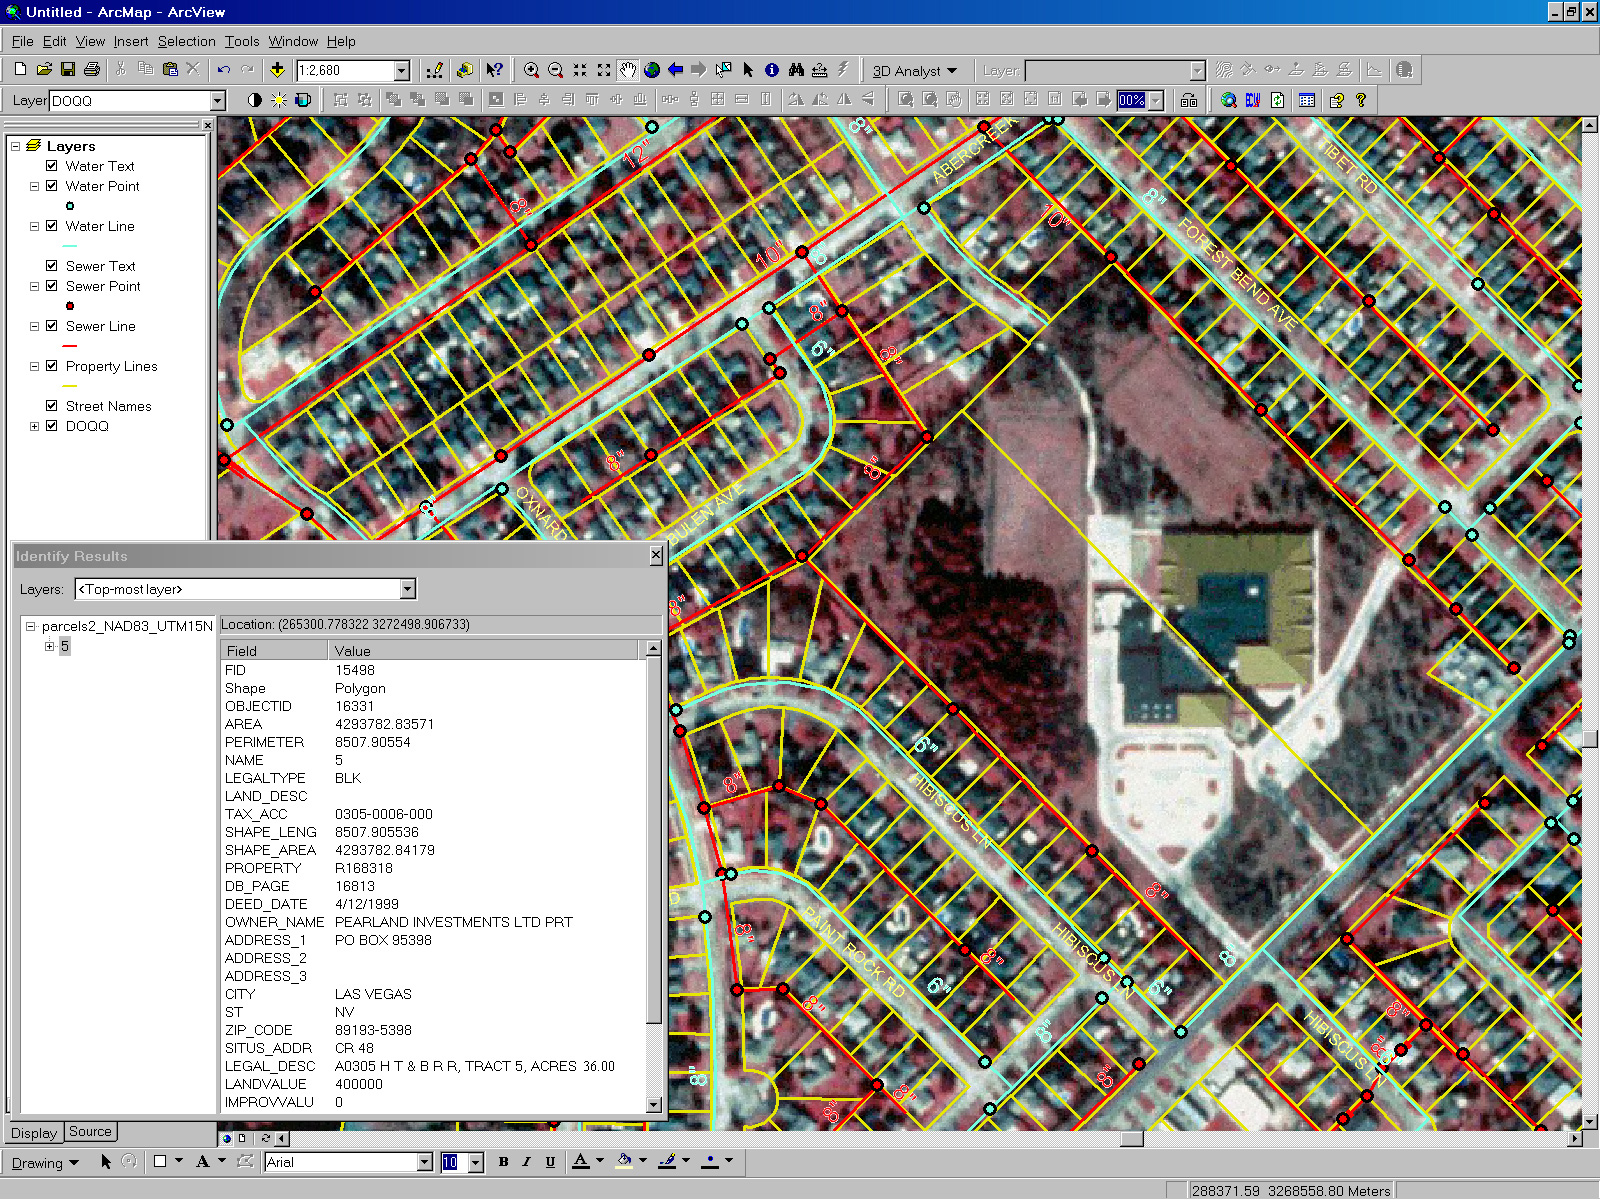 ArcGIS, Desktop GIS (c) ESRI *Dongle Emulator (Dongle Crack) for Sentinel SuperPro*